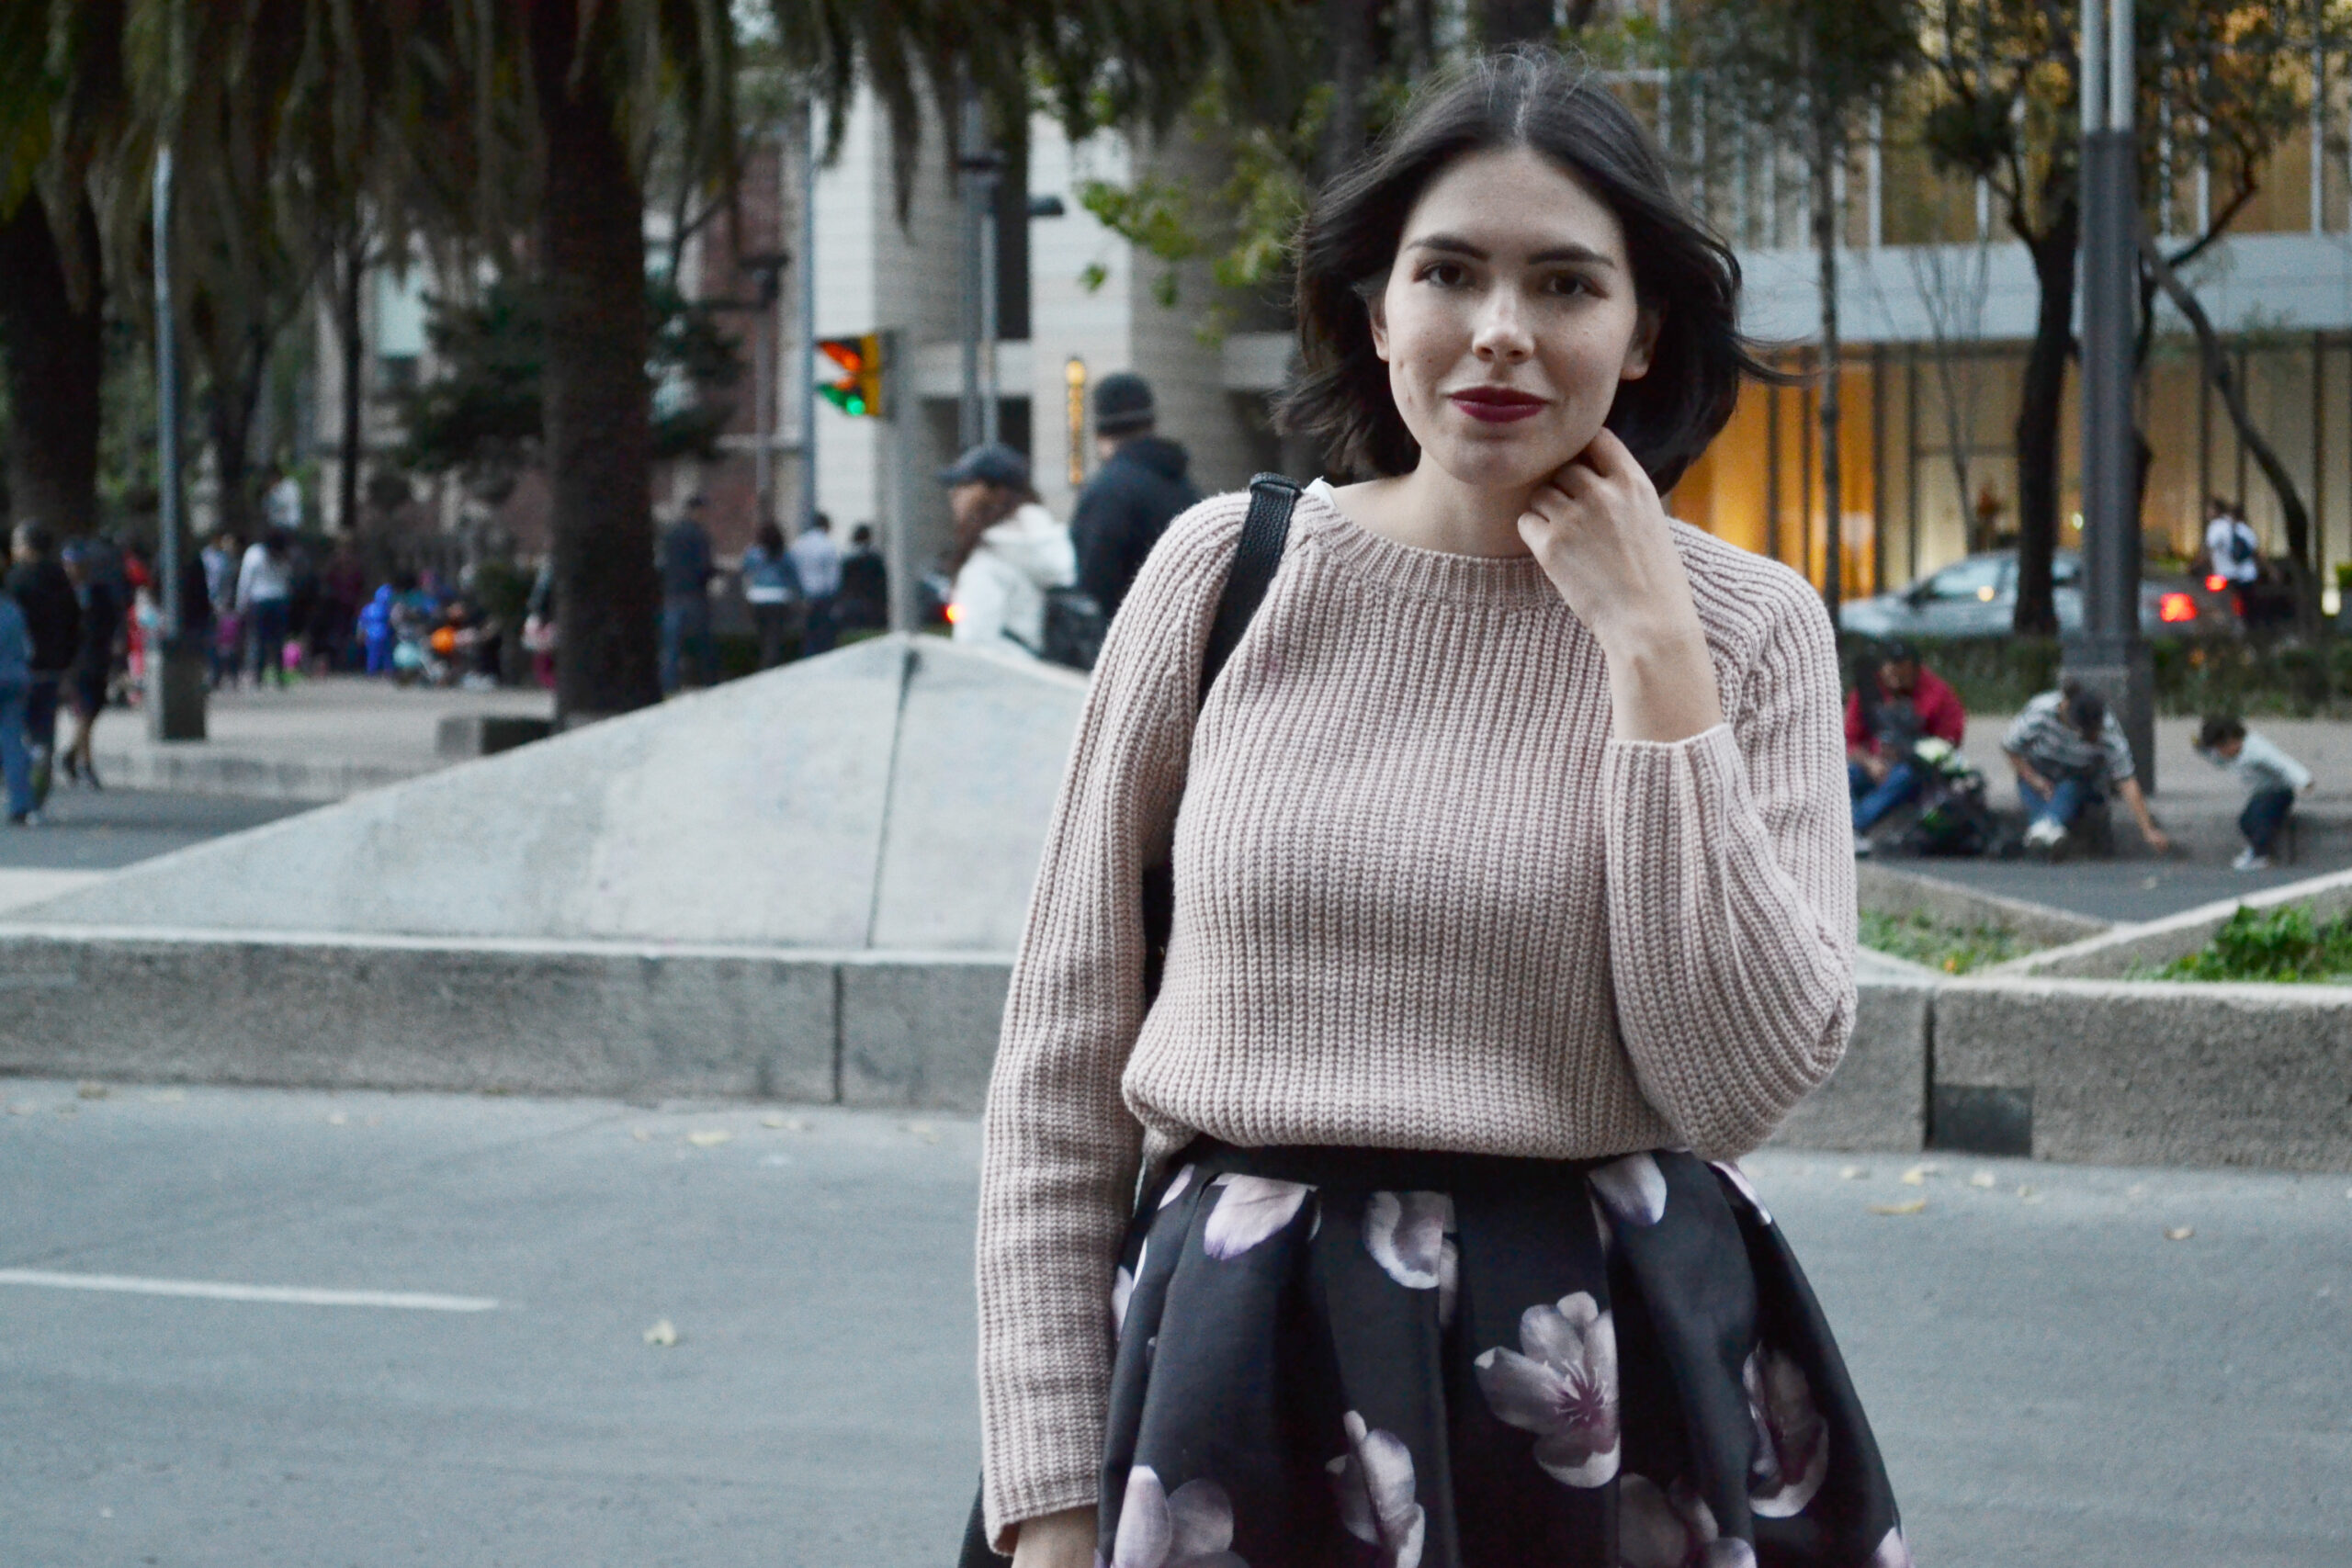 daniela soriano, outfit, mexico city, reforma, full skirt, midi skirt, flower print, sneakers, nike, chunky knit, pink, light pink, forever21, outfit ideas